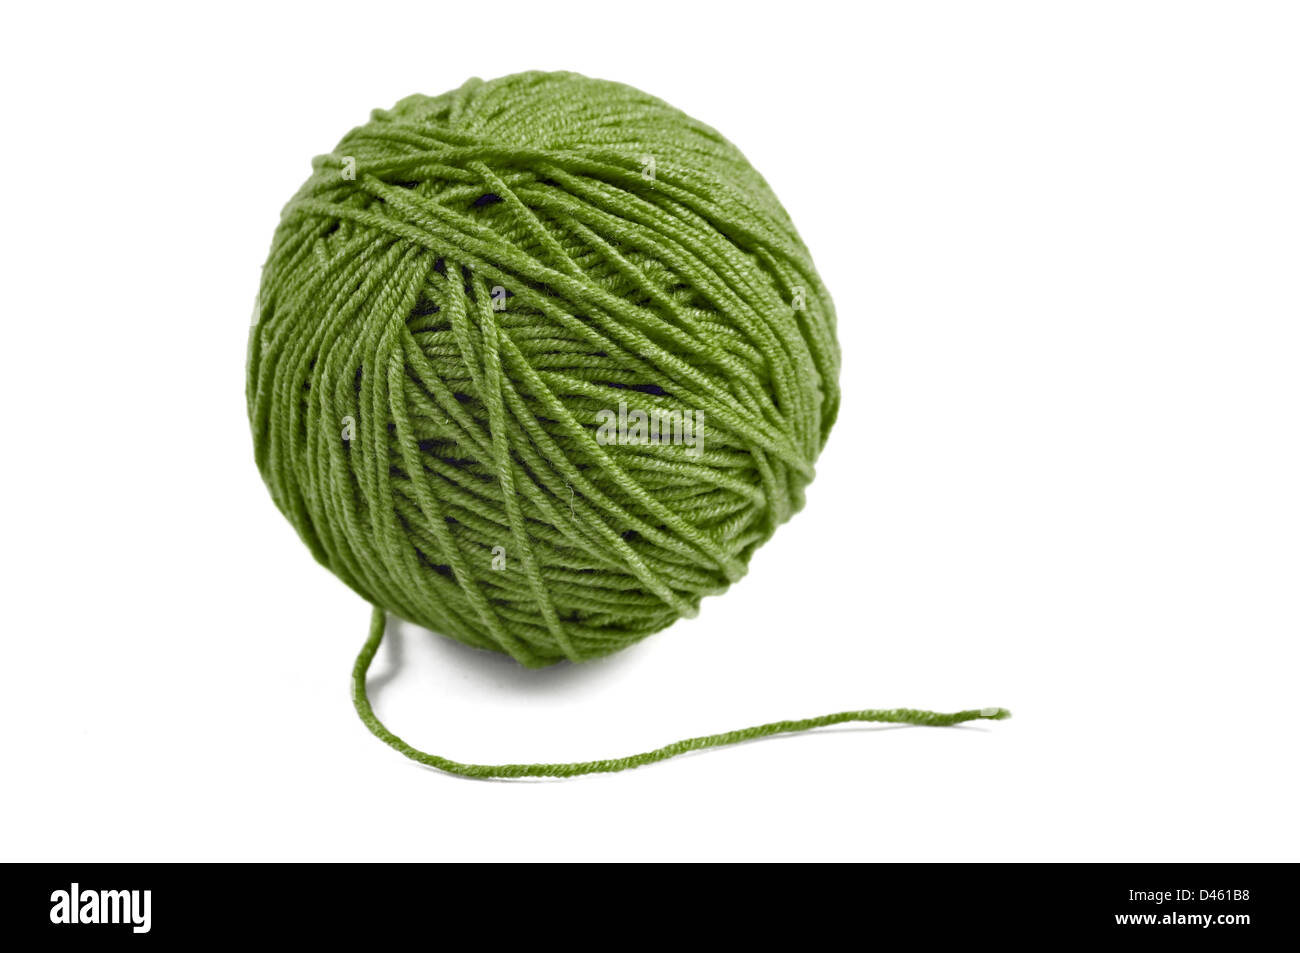 Green wool yarn ball isolated on white background - Stock Image